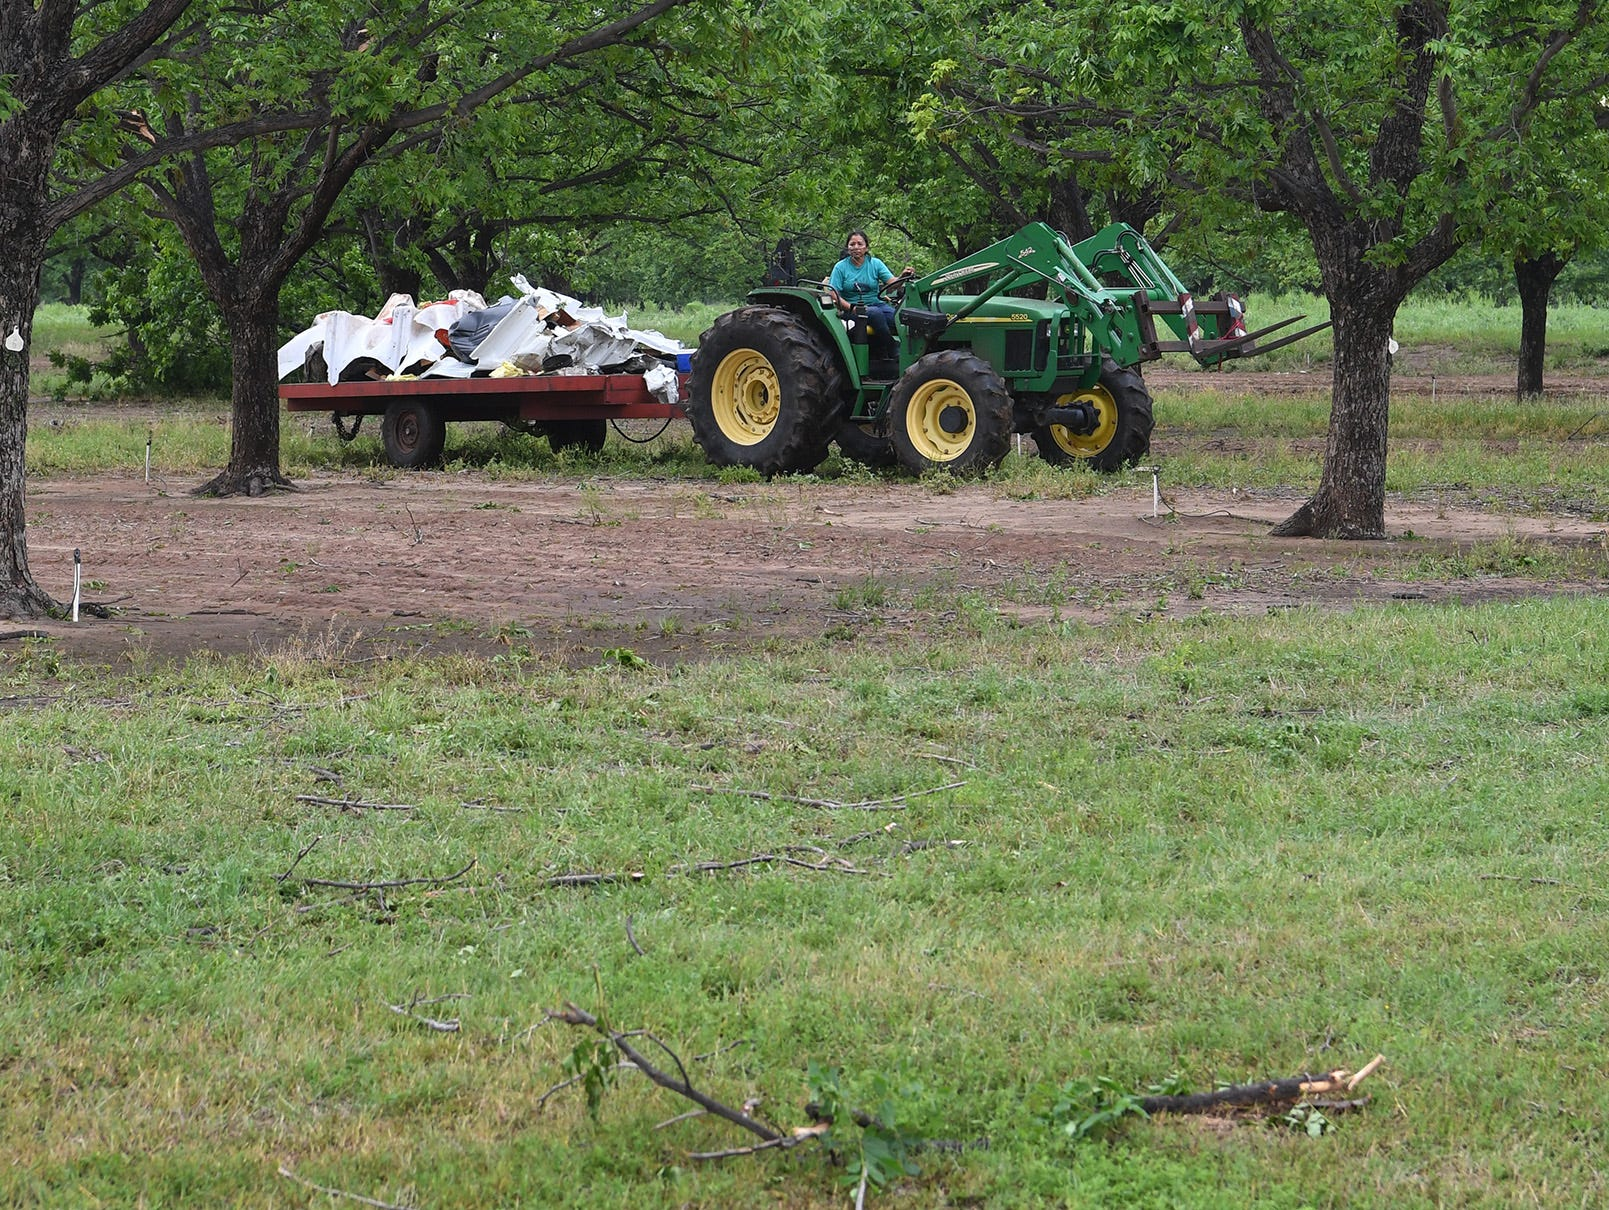 A farm worker at Montz Home Orchard in Charlie, Texas drives a tractor hauling storm debris from a tornado that struck Tuesday evening.